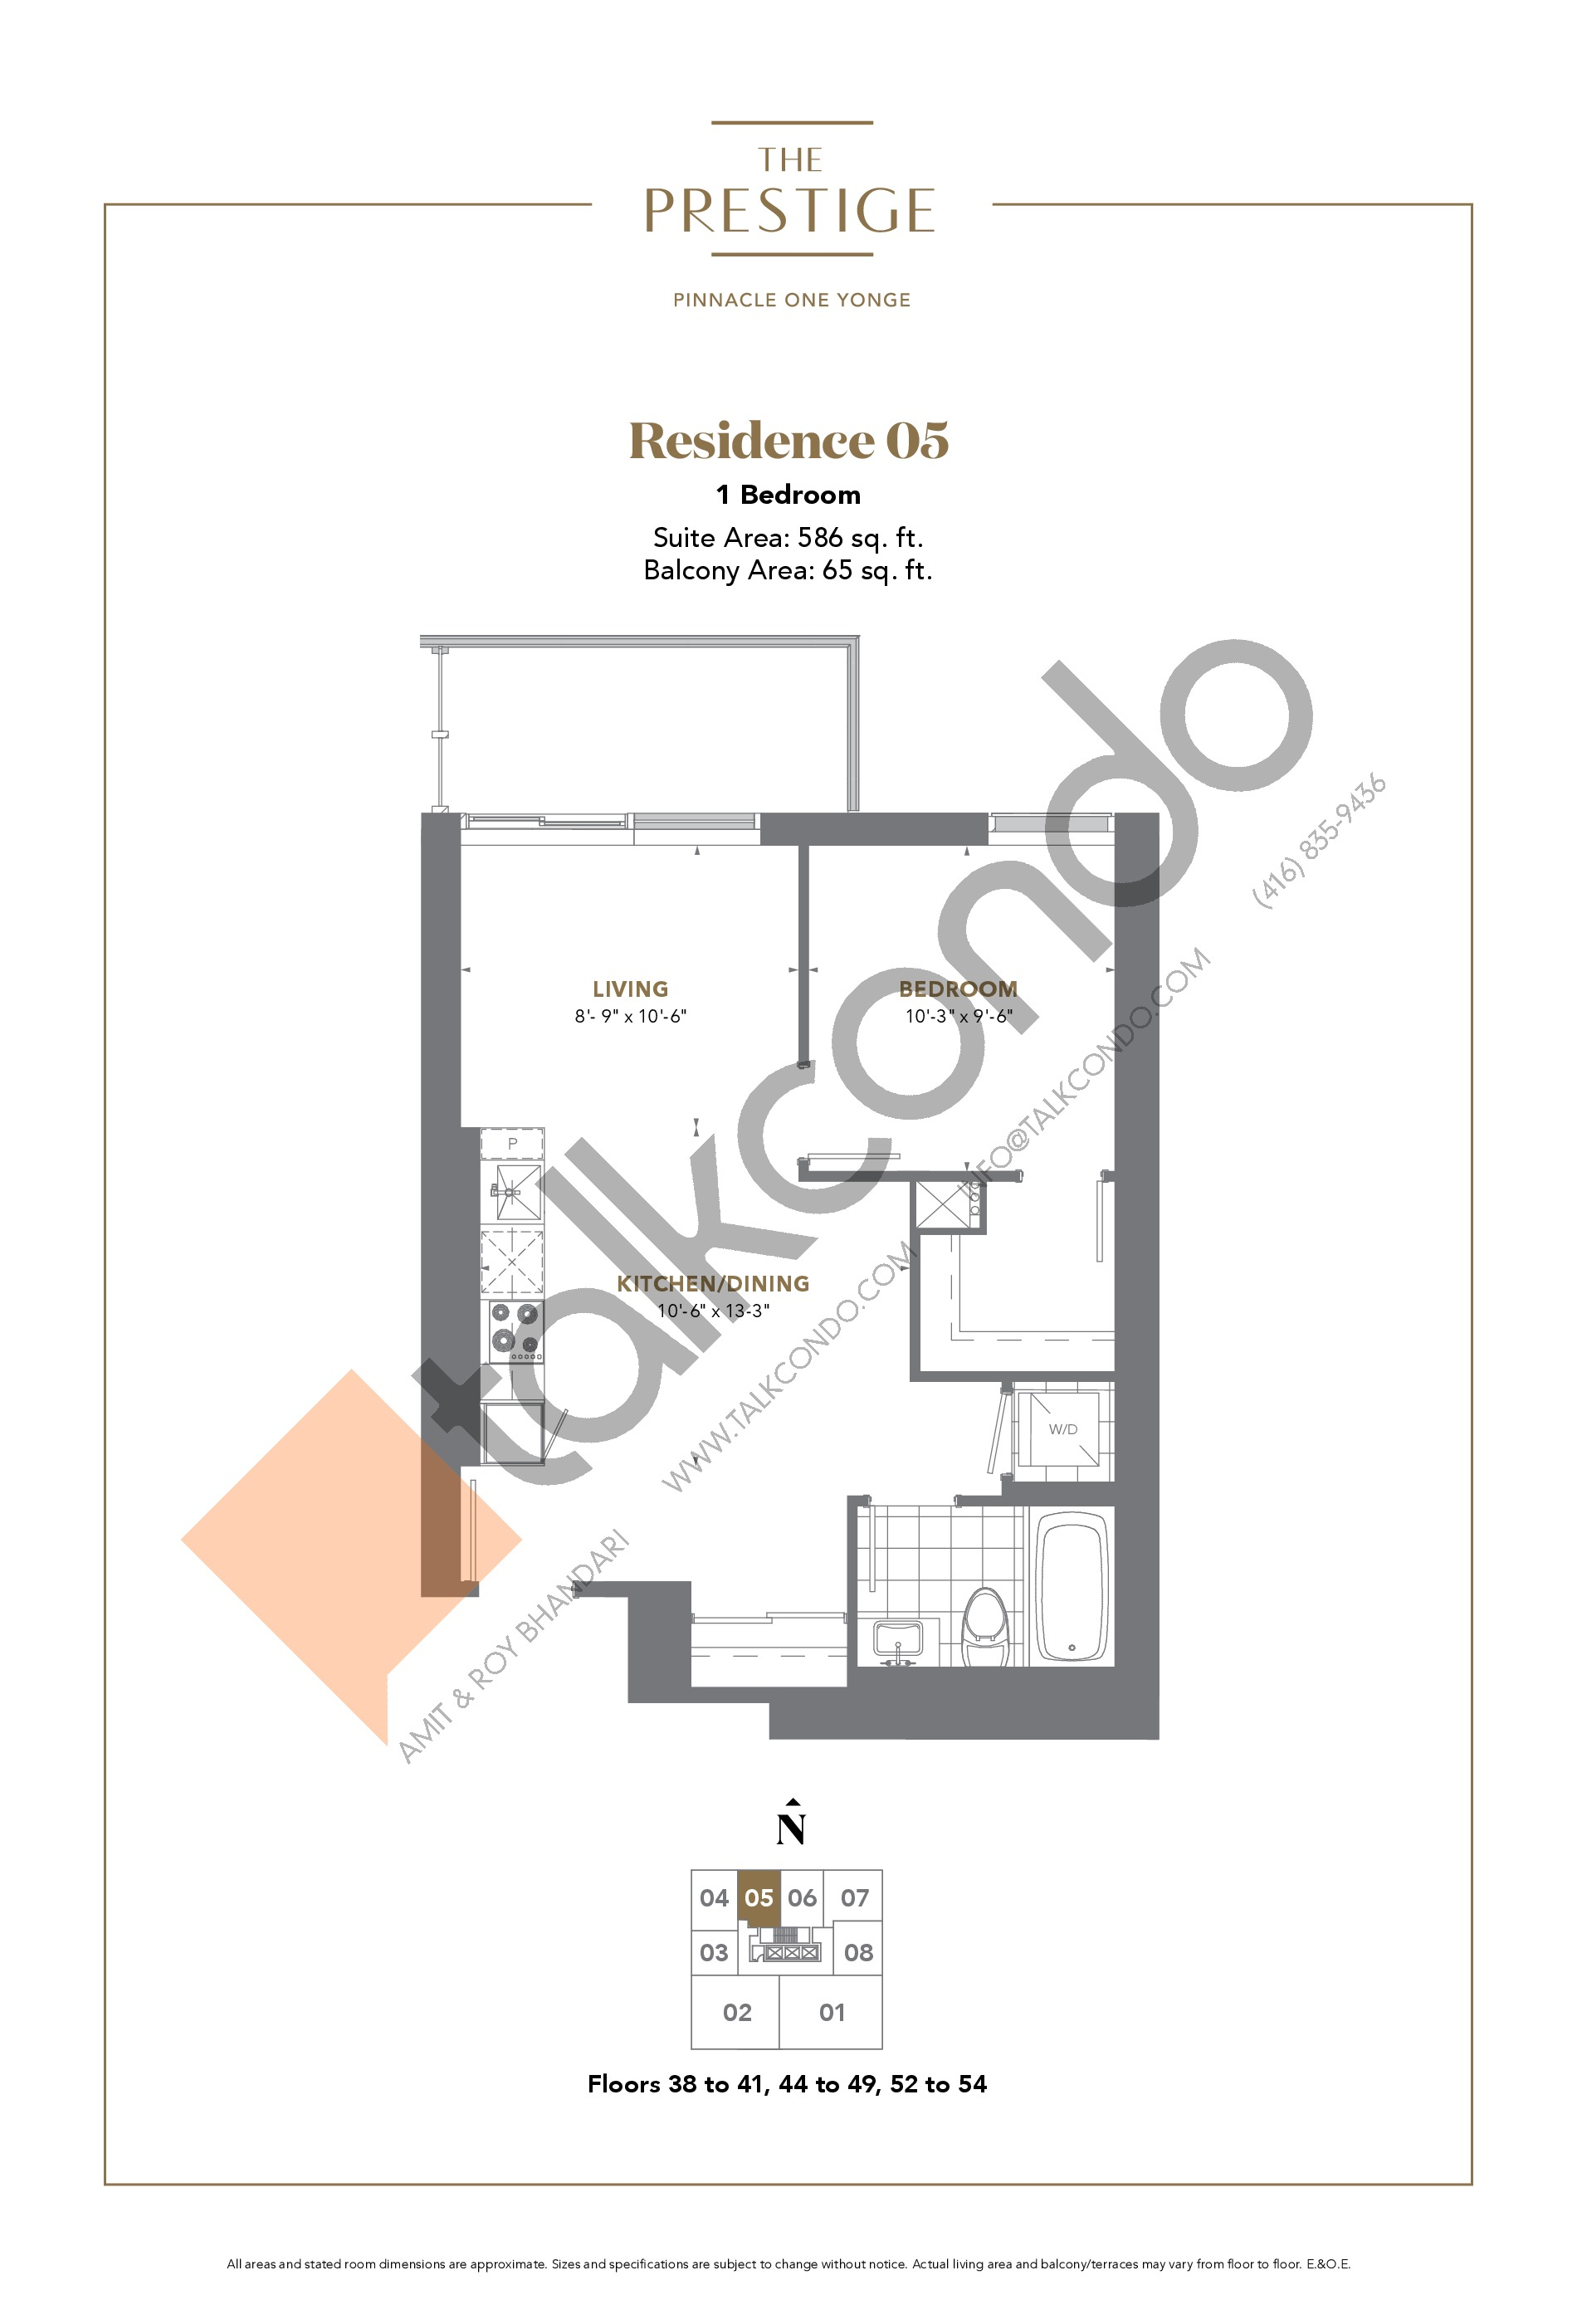 Residence 05 Floor Plan at The Prestige Condos at Pinnacle One Yonge - 586 sq.ft